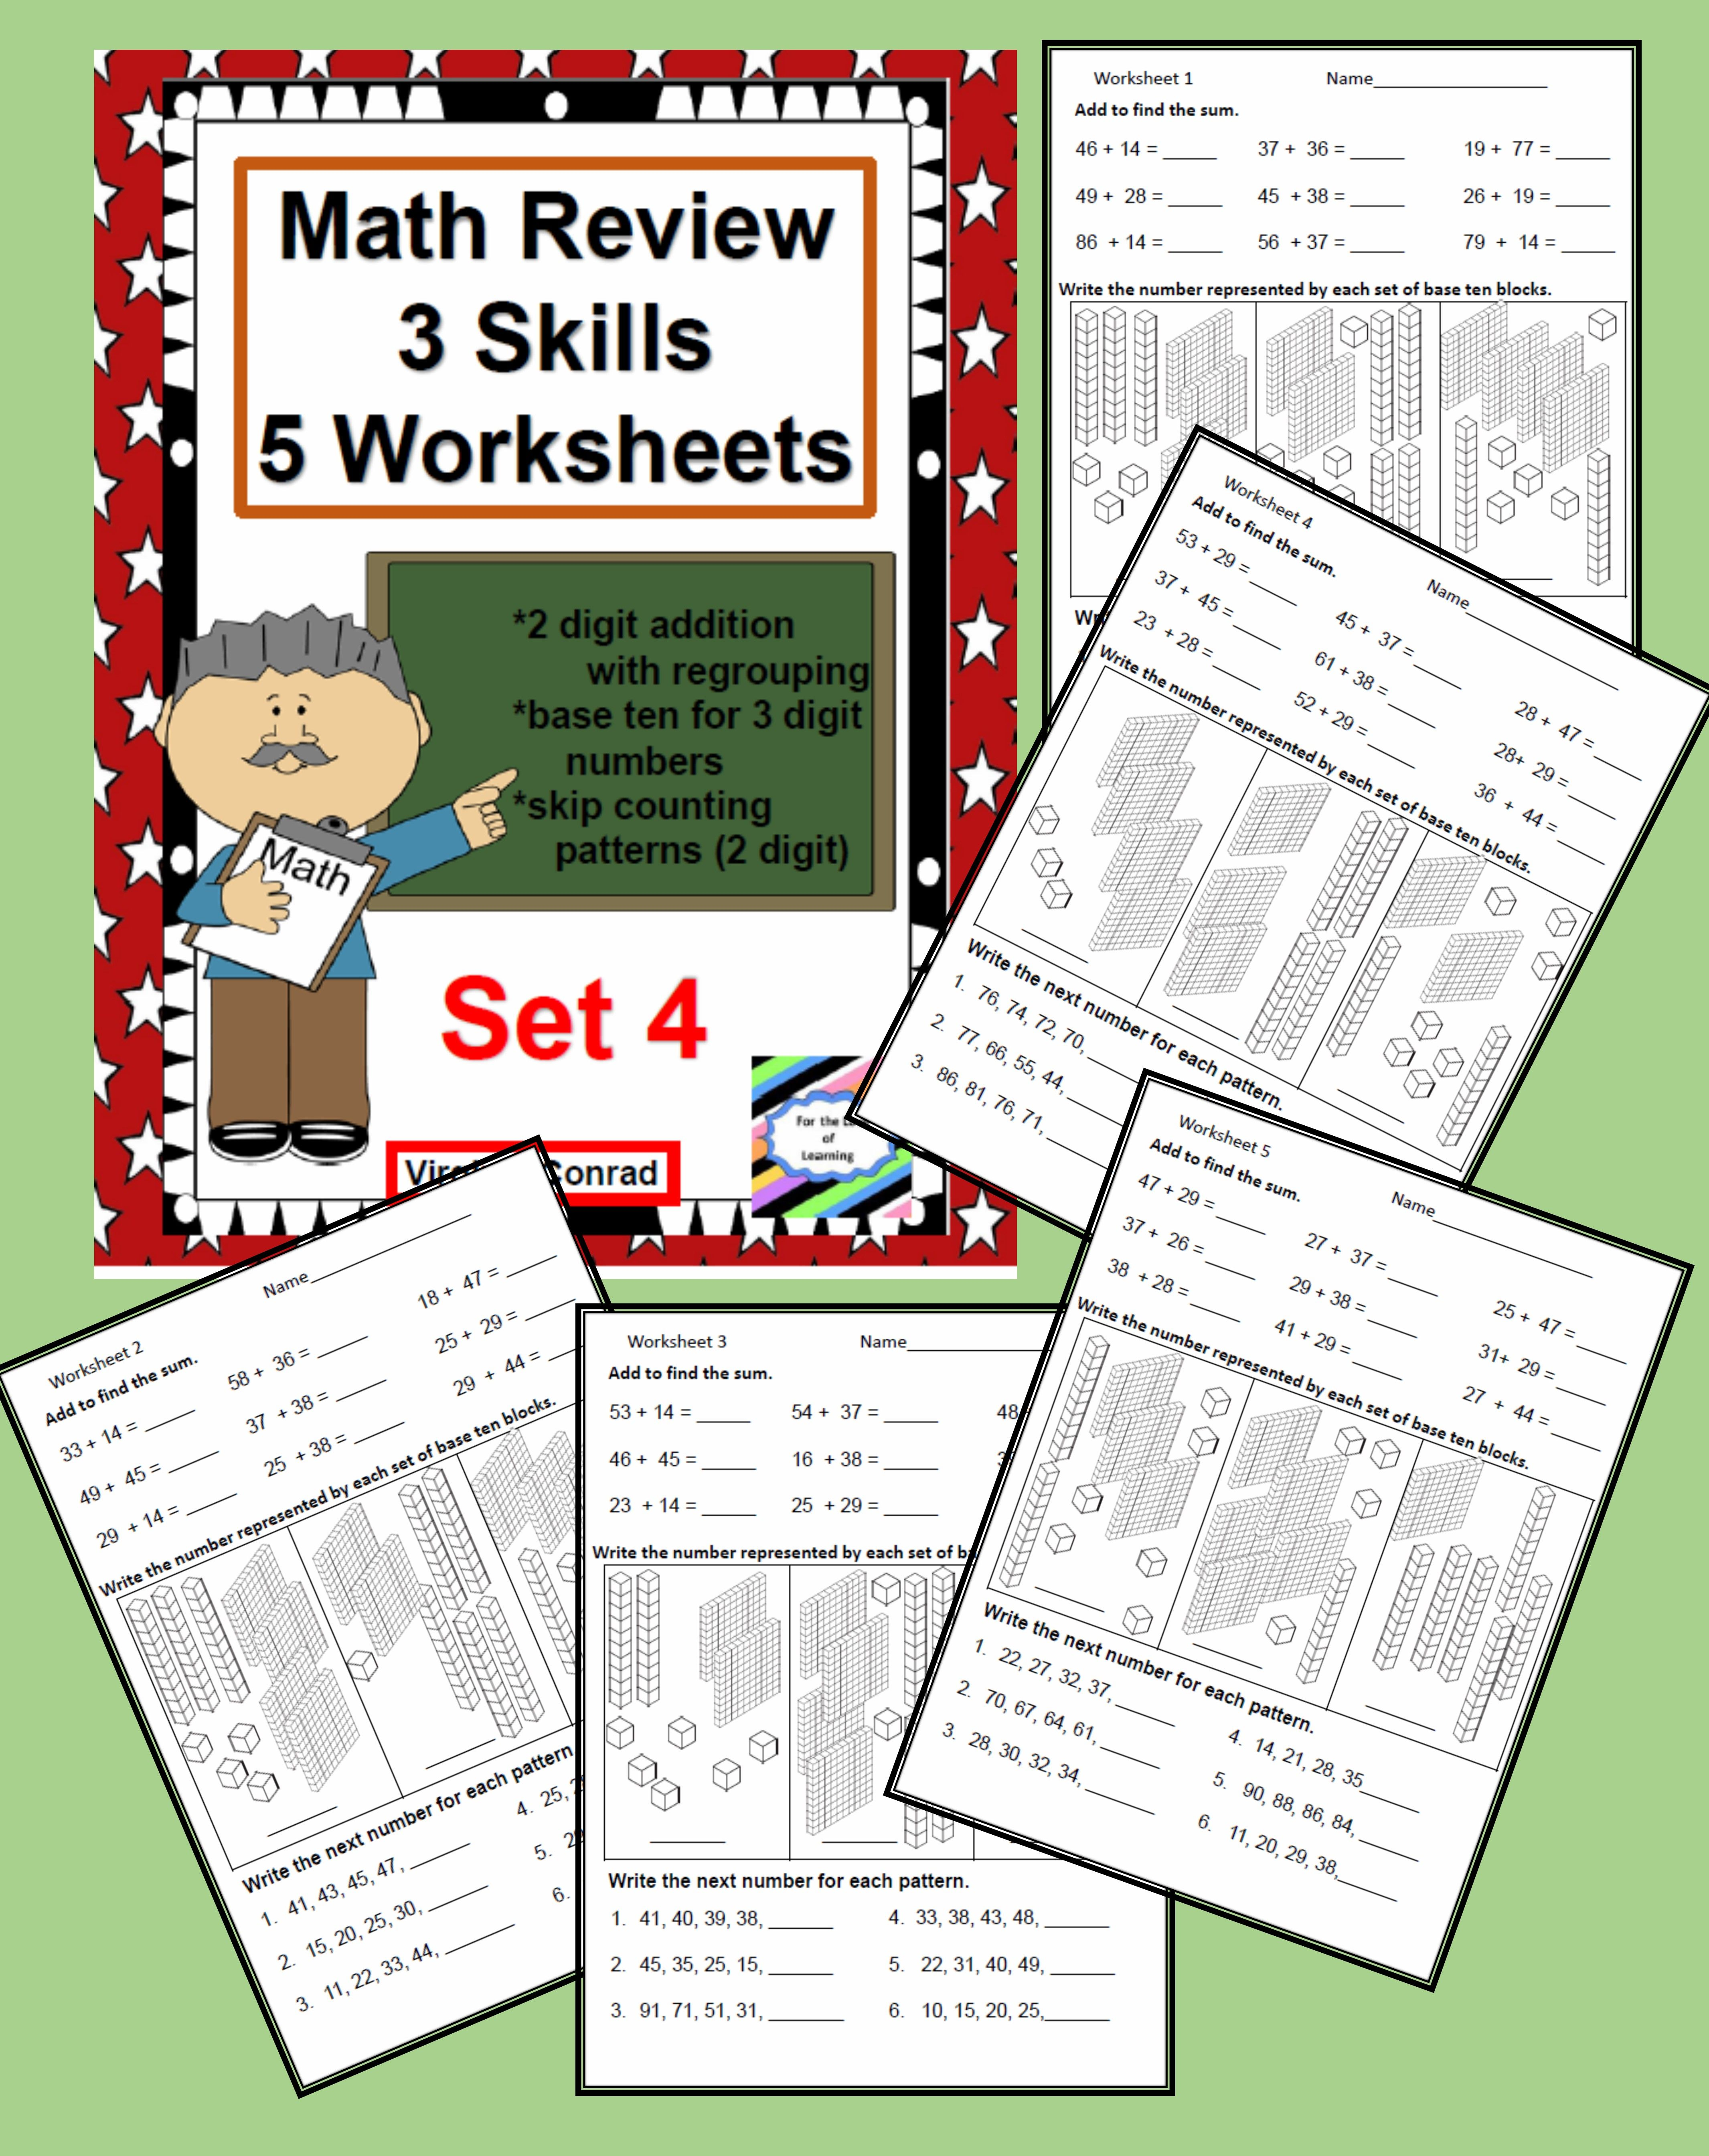 Math Review Worksheets 3 Skills For 5 Days Set 4 With